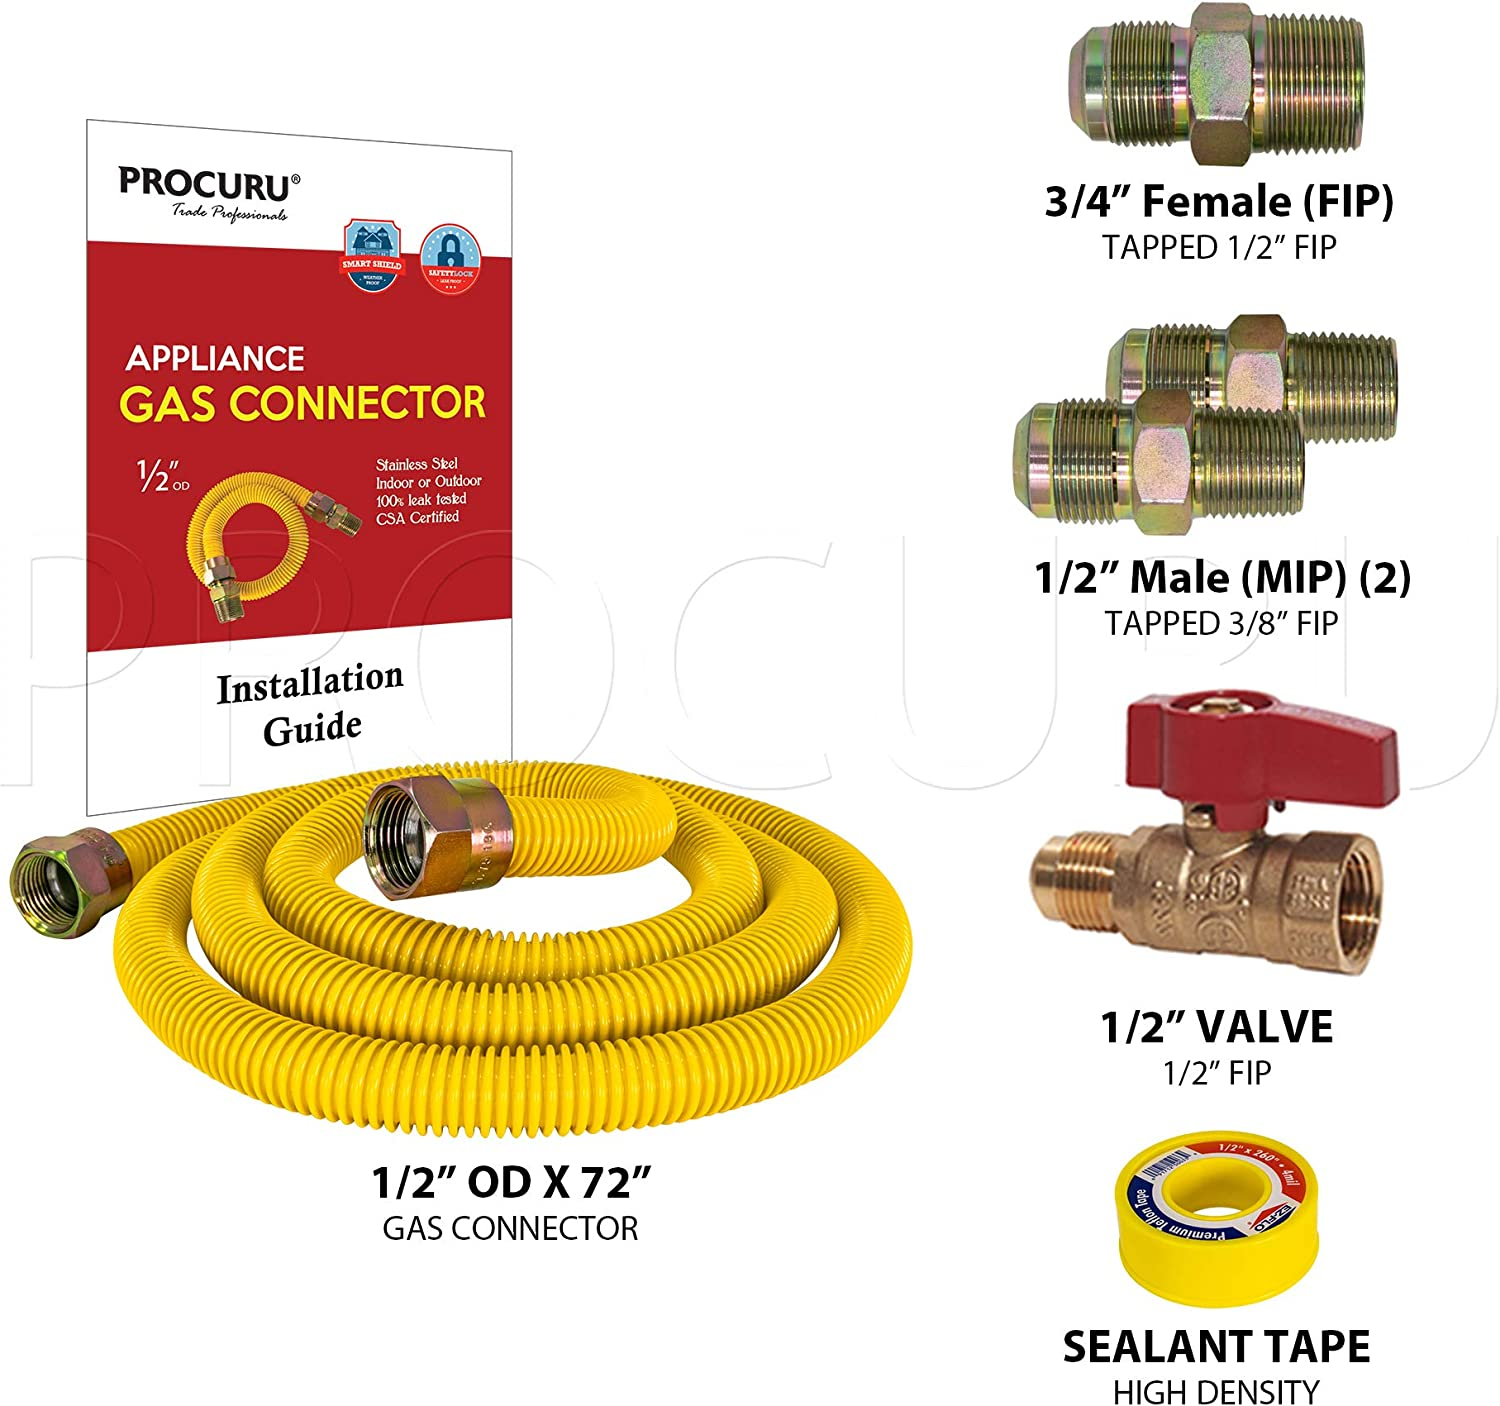 Weatherproof Flexible Stainless Steel Pipe Yellow SafeGuard Coating Water Heater PROCURU 12 x 1//2 OD Gas Flex Line Connector Kit with 1//2 Straight Valve for Dryer Bbq Grill